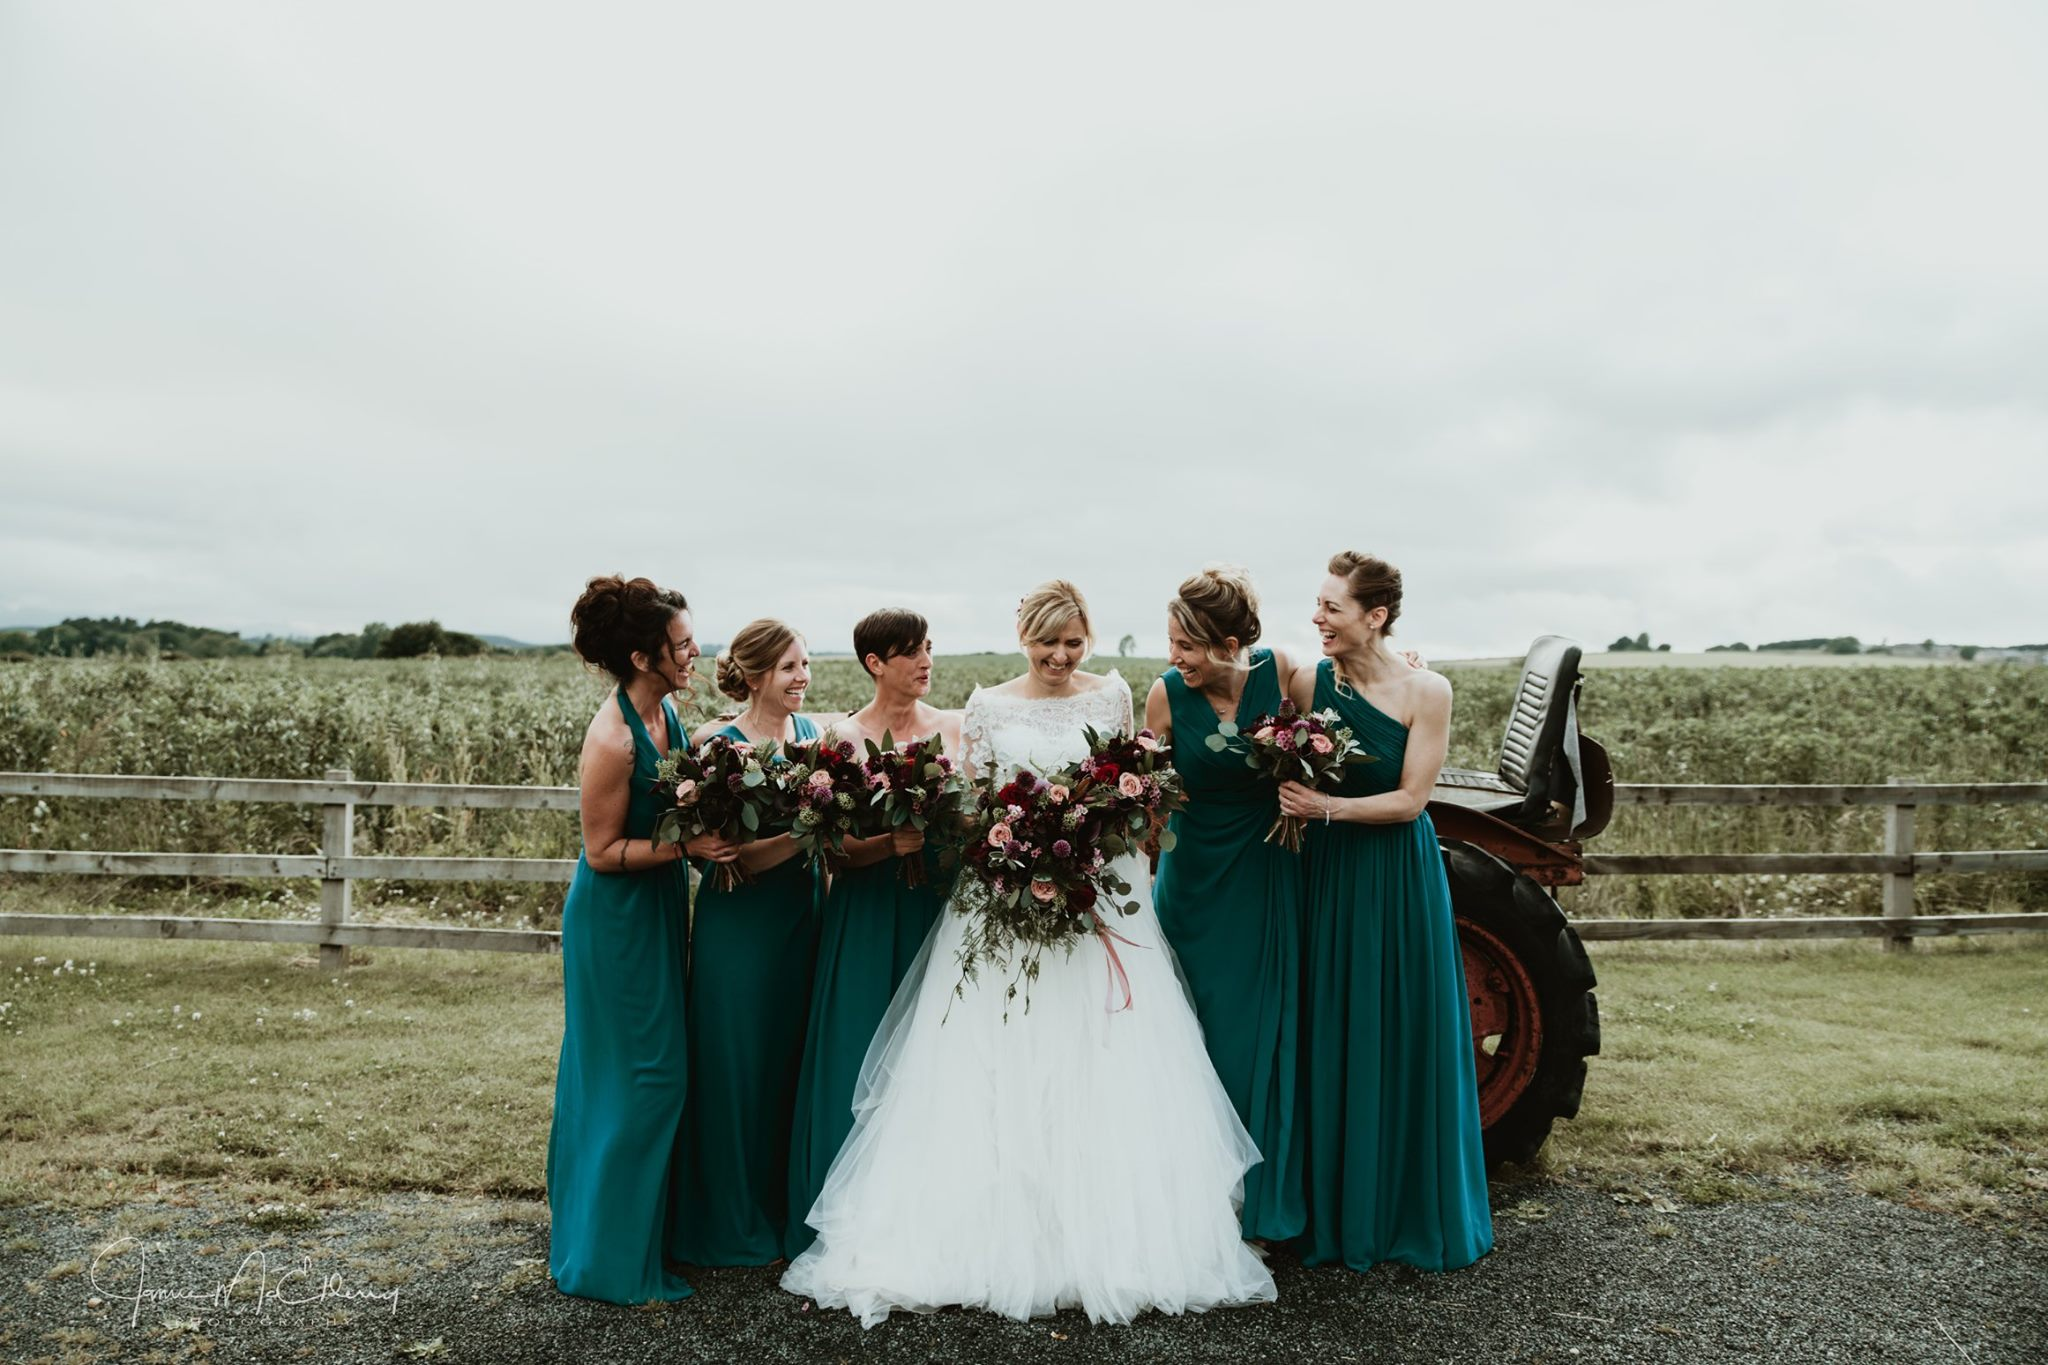 bride and bridesmaids posing next to tractor fram wedding